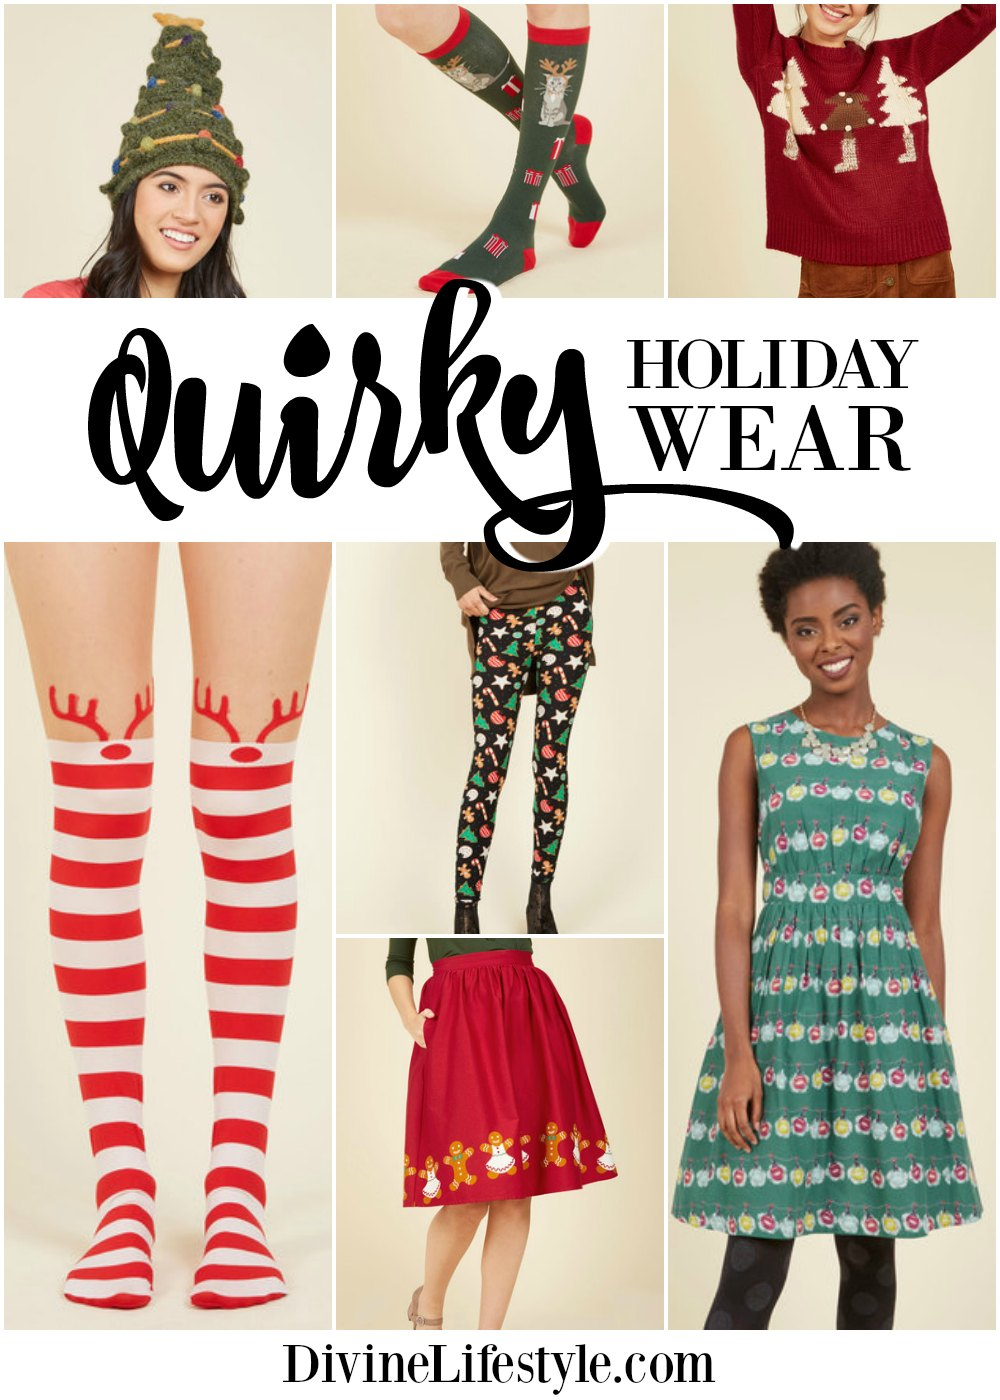 Quirky Finds for the Holiday Fanatic in Your Life